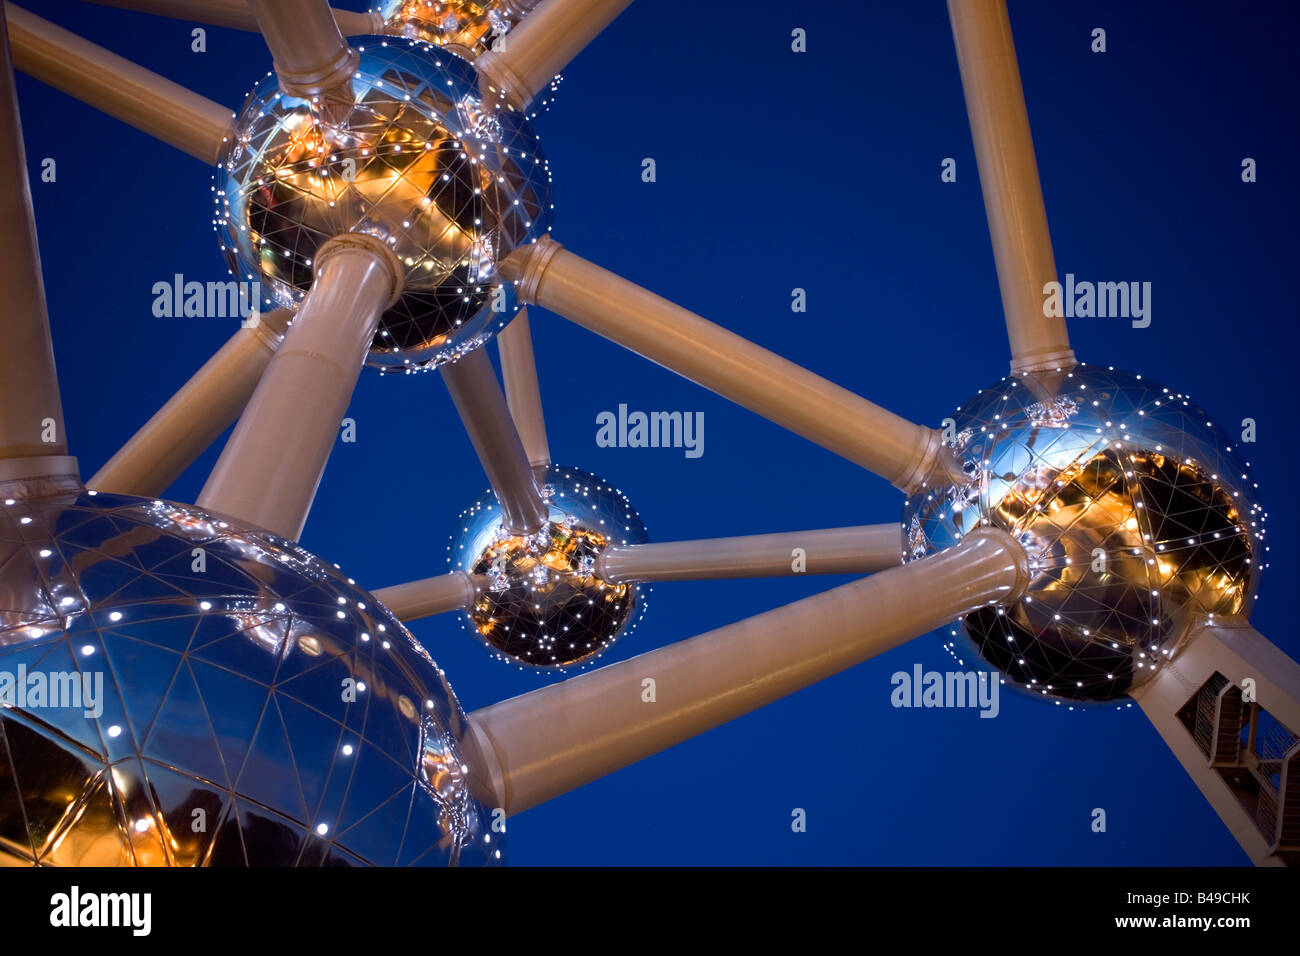 View of the Atomium in Brussels, was built 1958, Belgium. - Stock Image